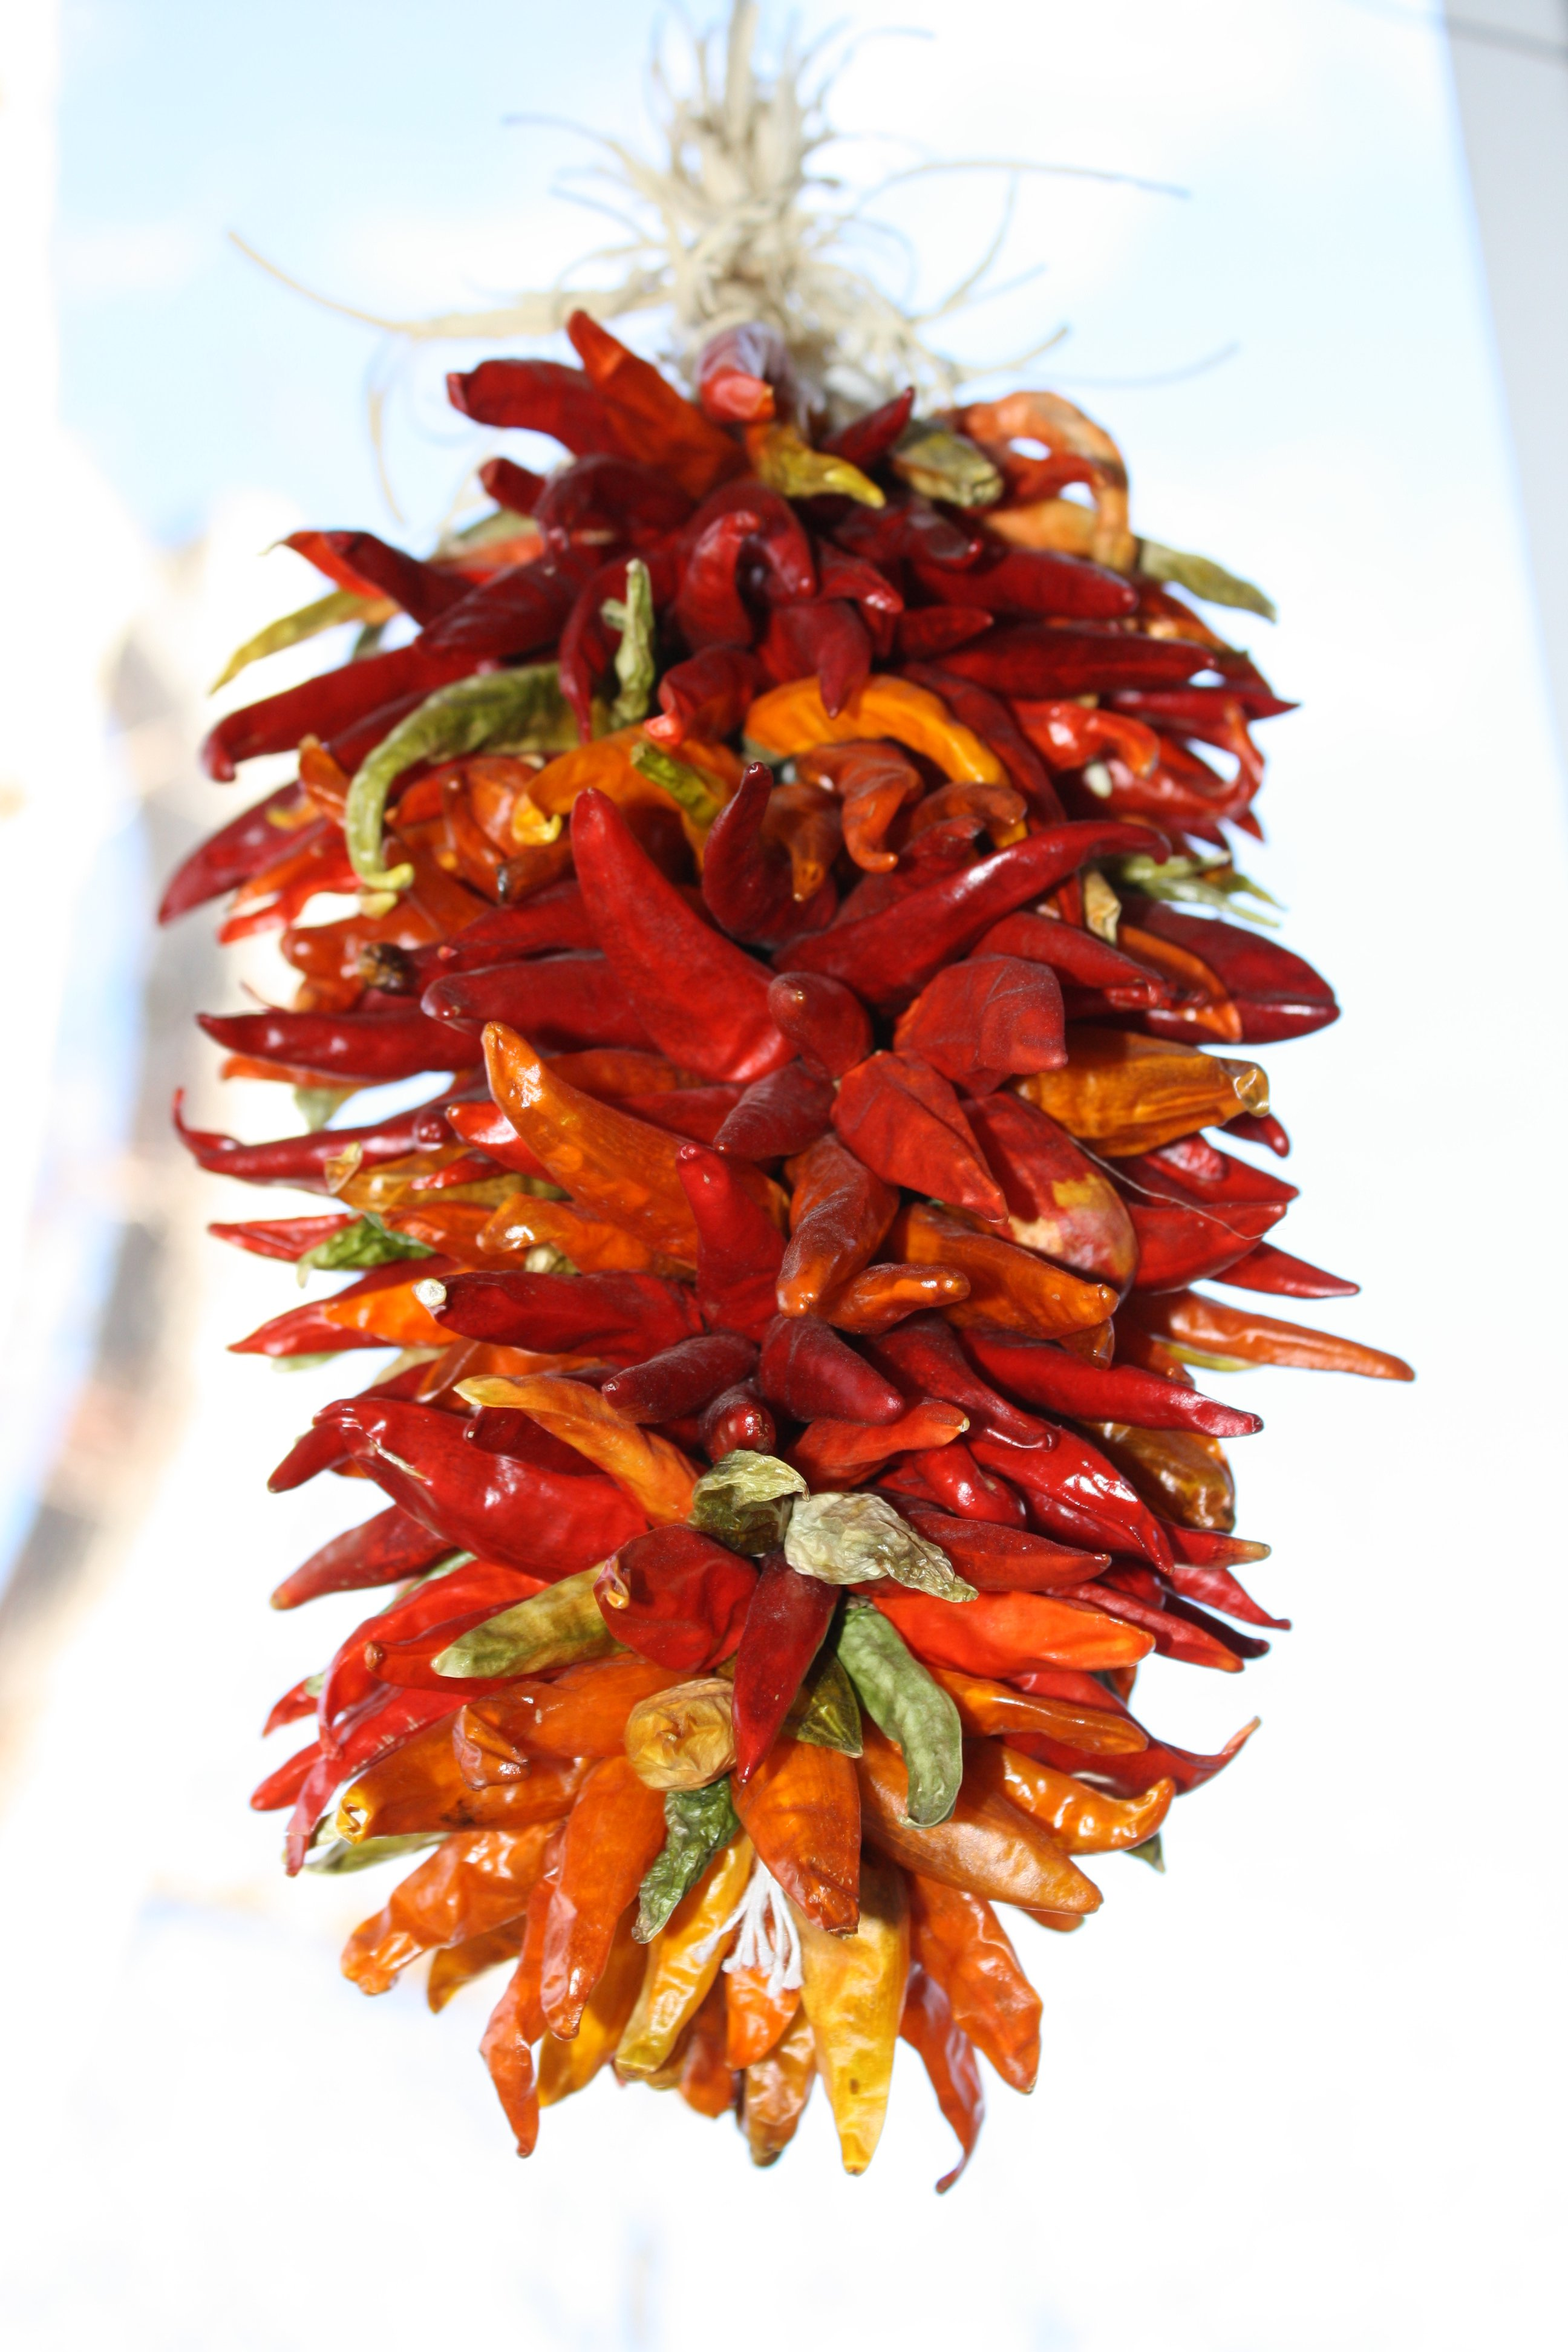 Hanging Chili Peppers Ristra Decoration Picture Free